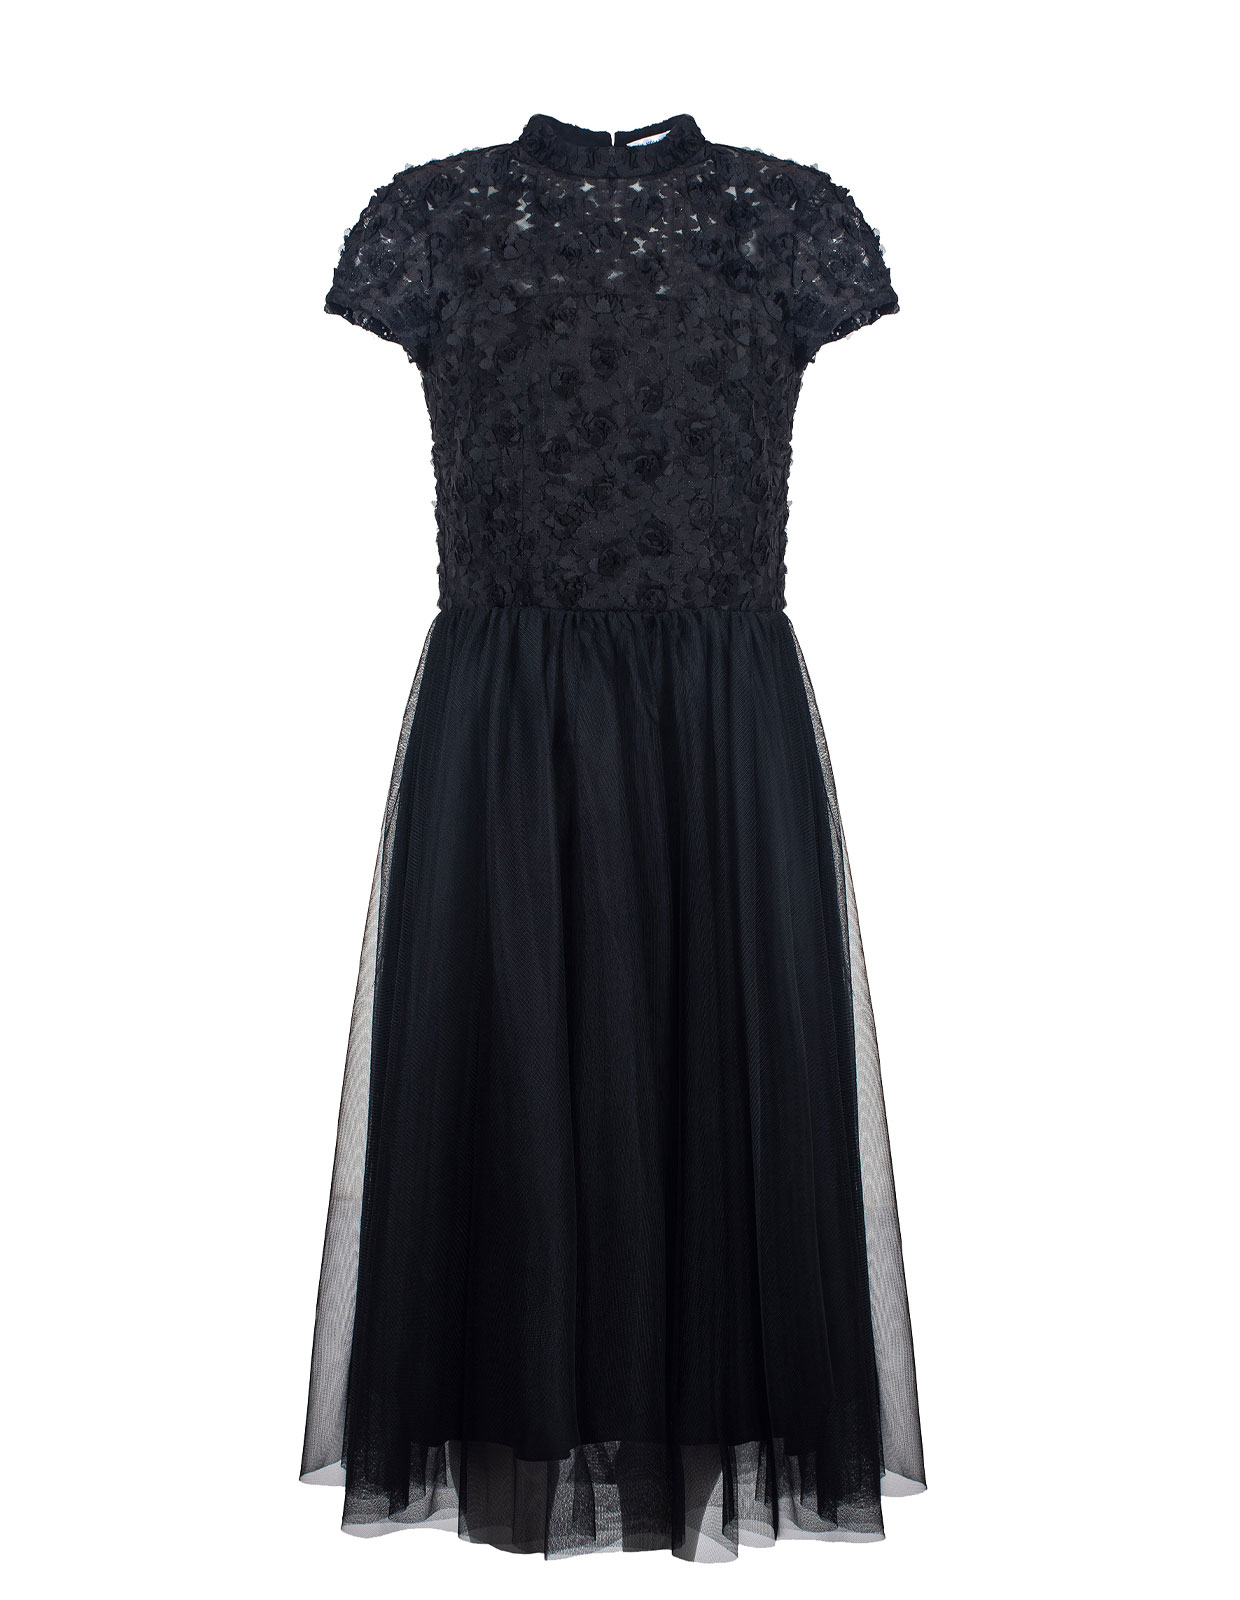 Mollie Dress Black